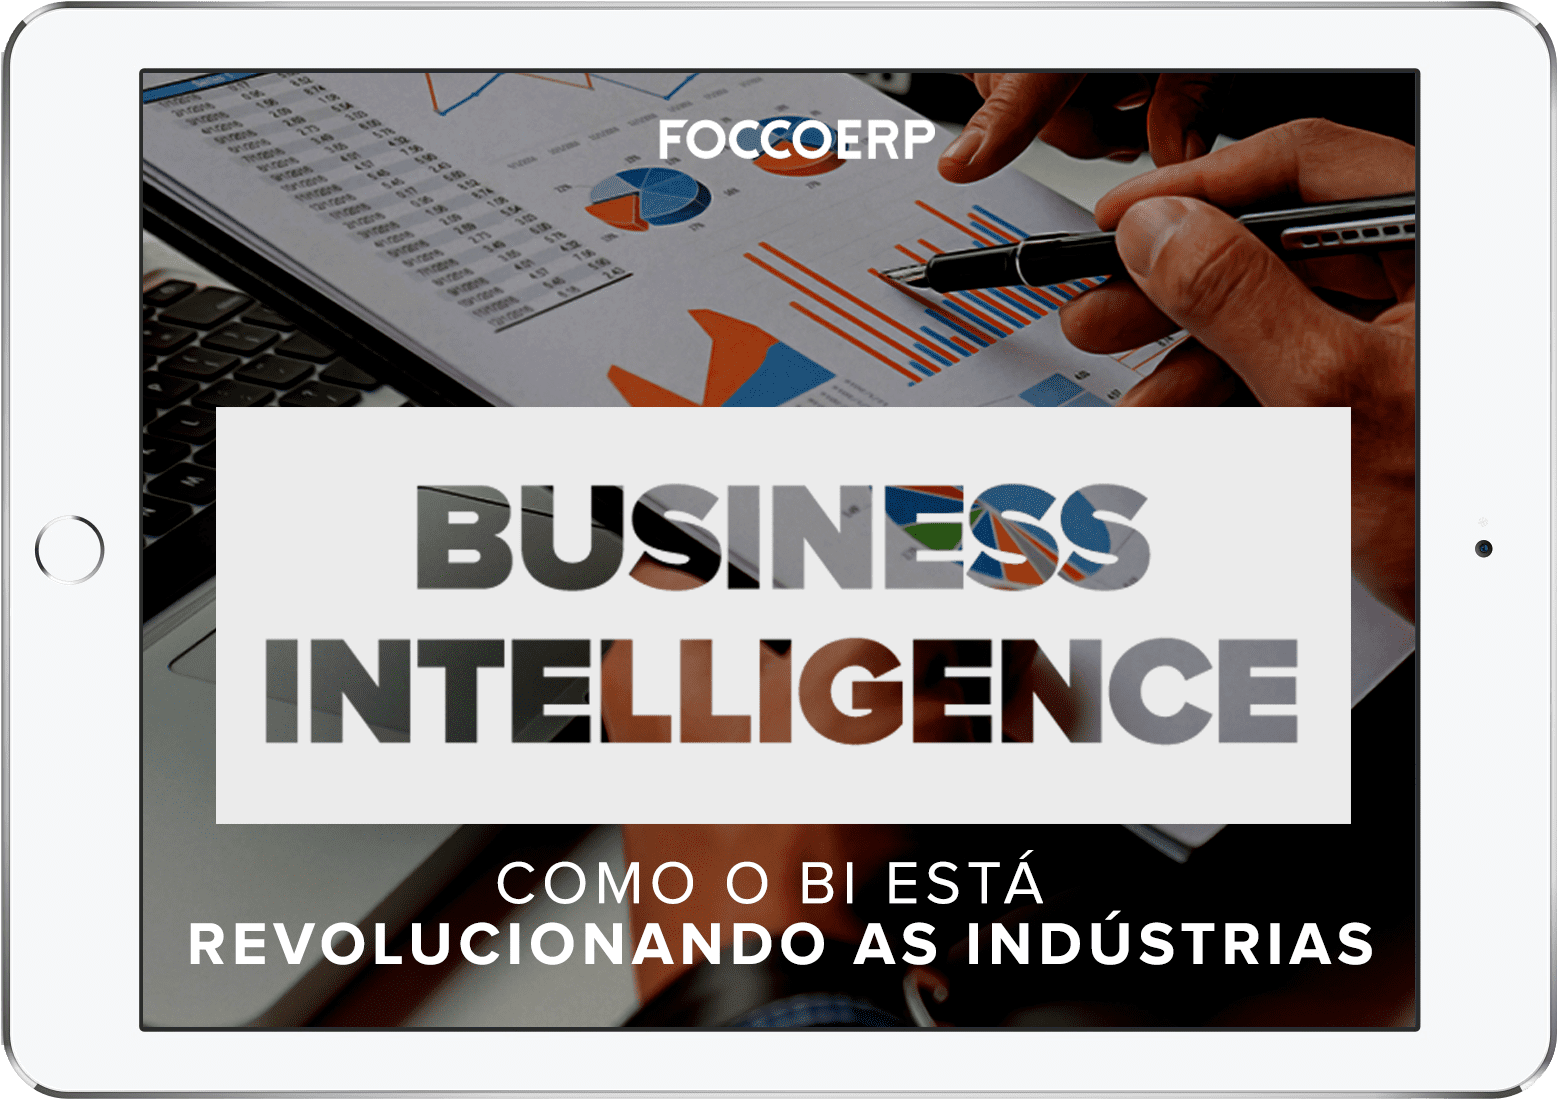 iPad business intelligence - revolucionando a industria